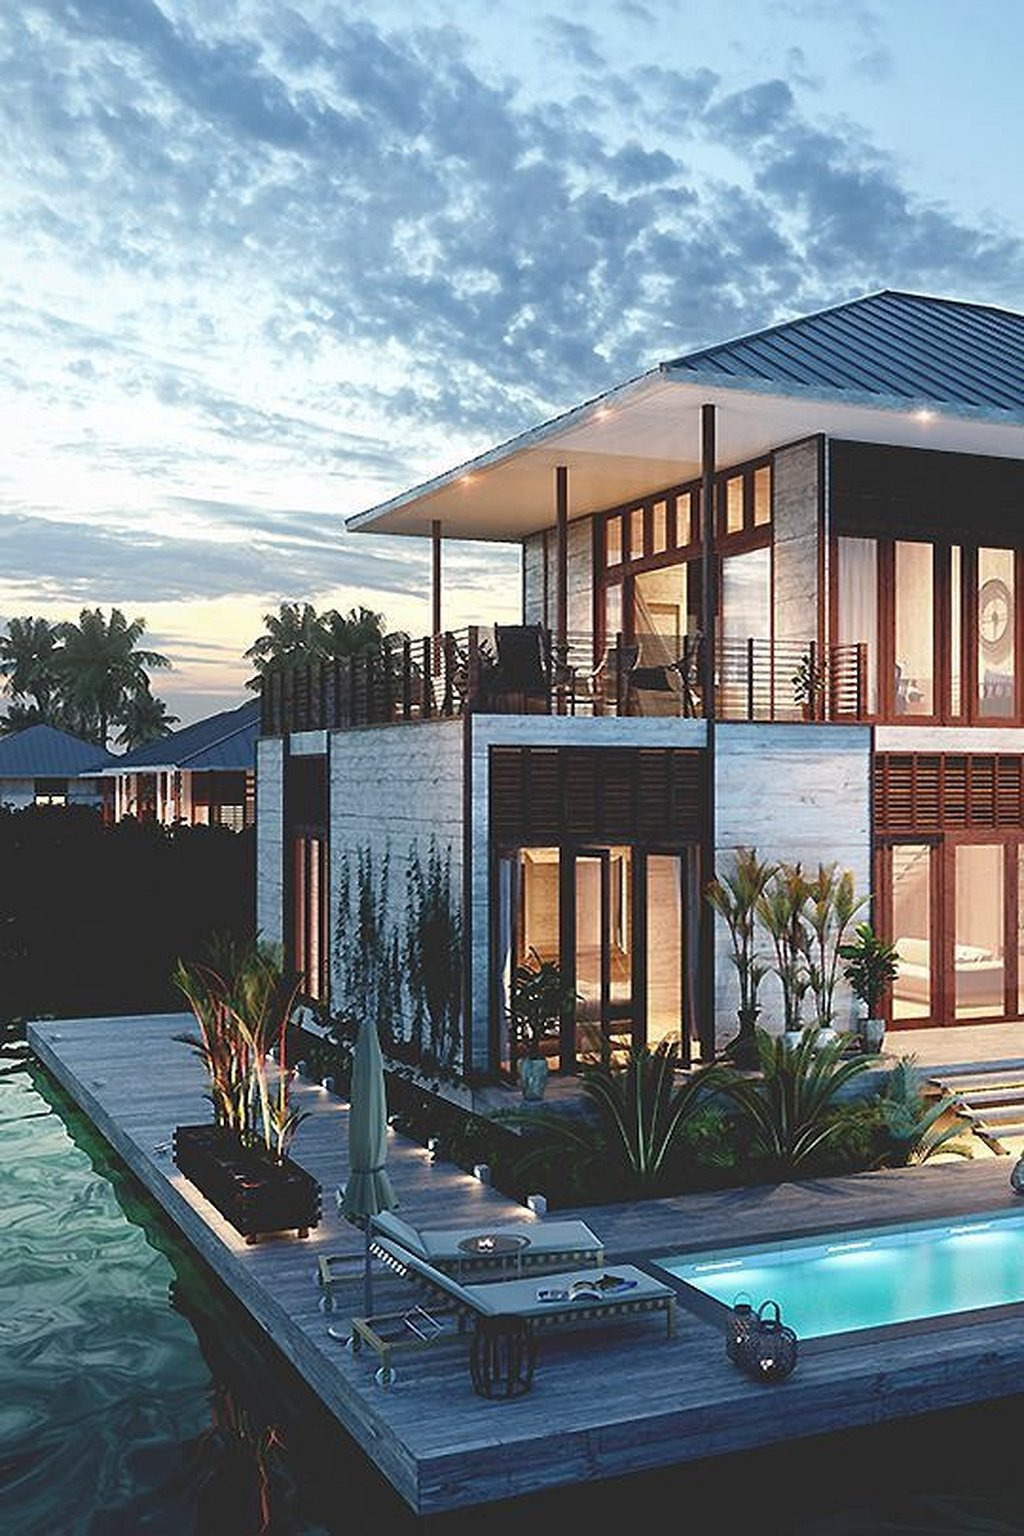 Architecture Pictures Of Houses Awesome Dream House Architecture 14 Of Dream Houses